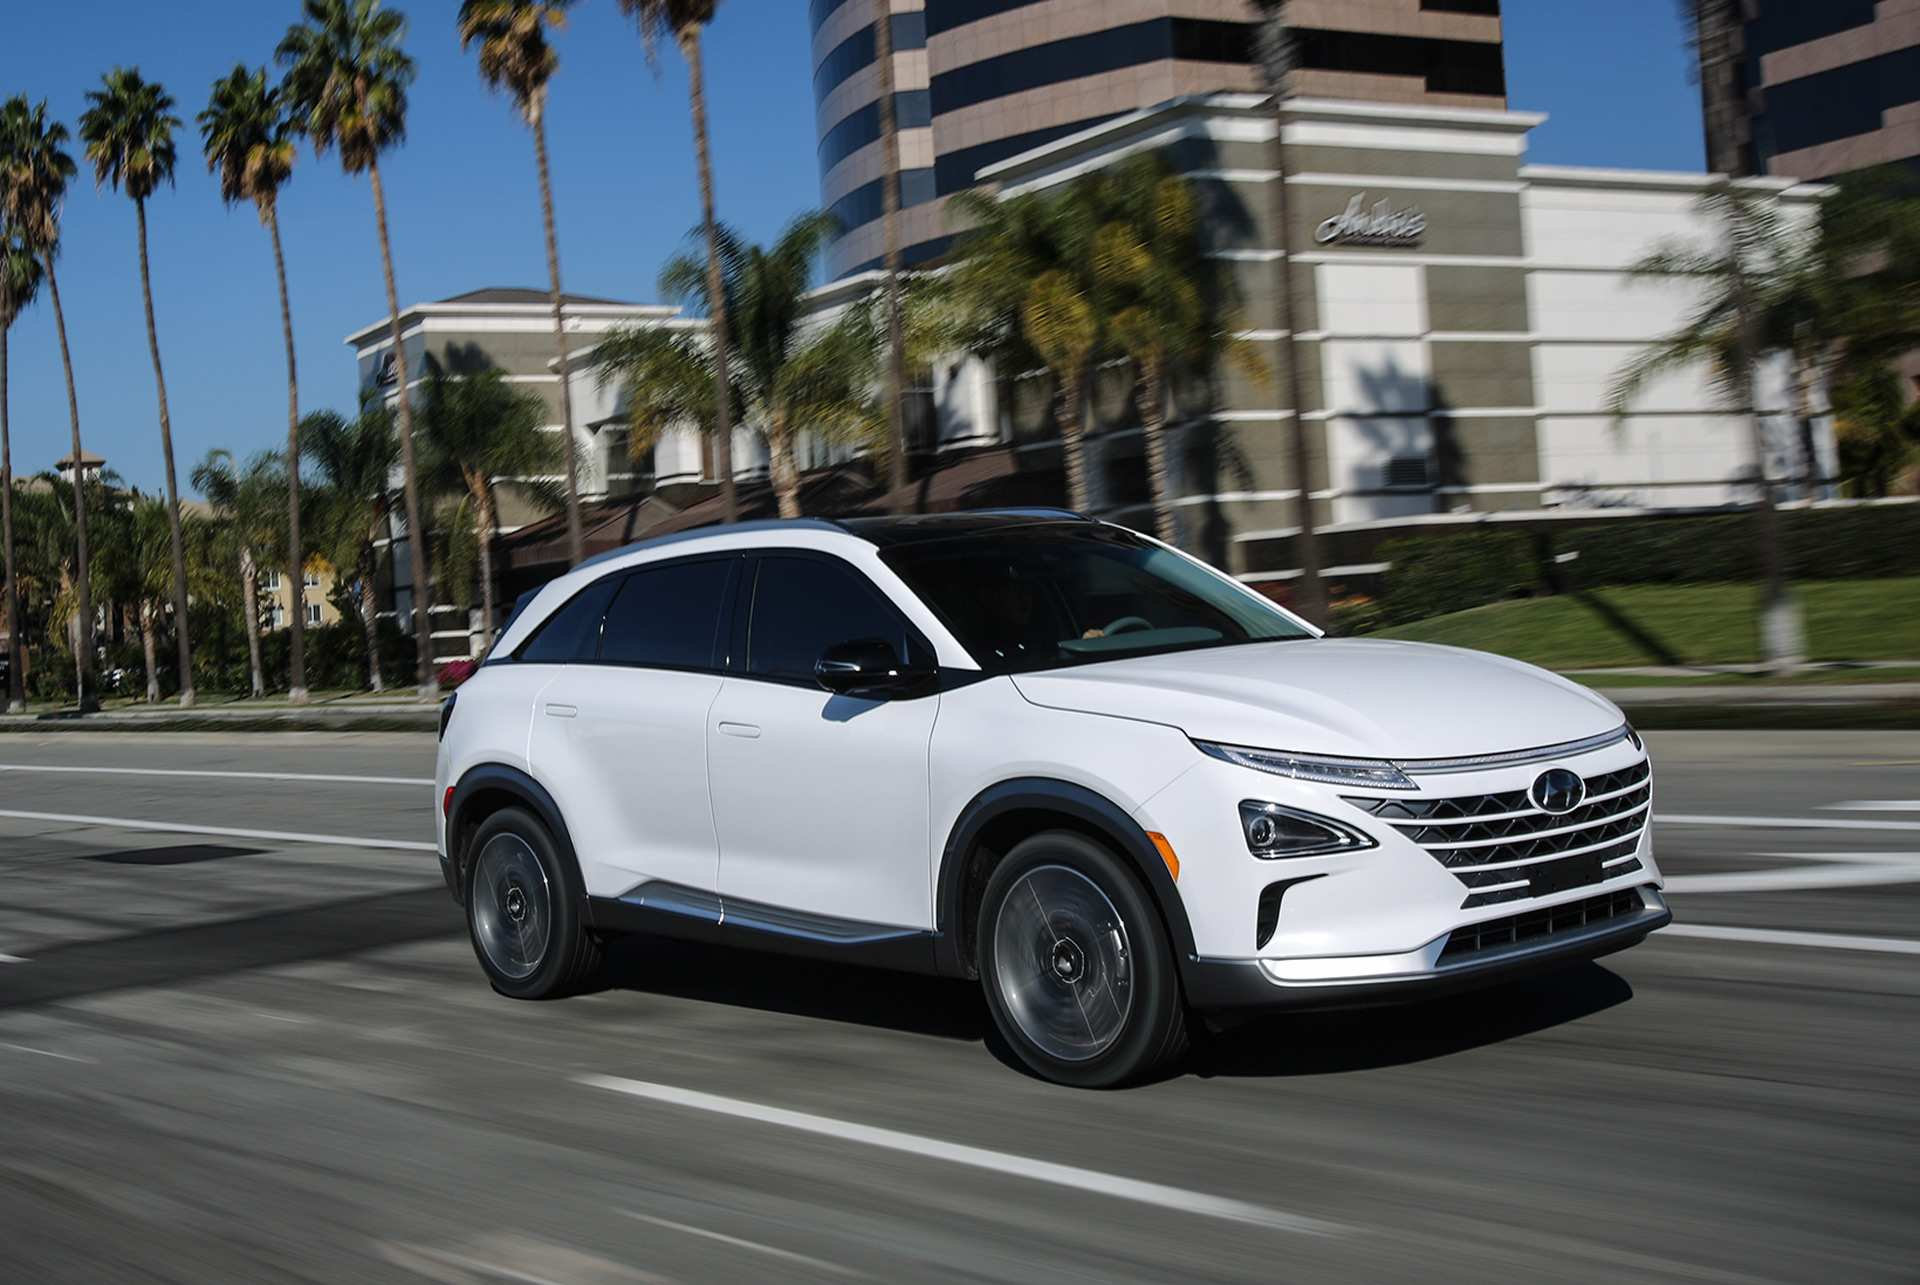 54 New Hyundai Nexo 2020 Specs And Review